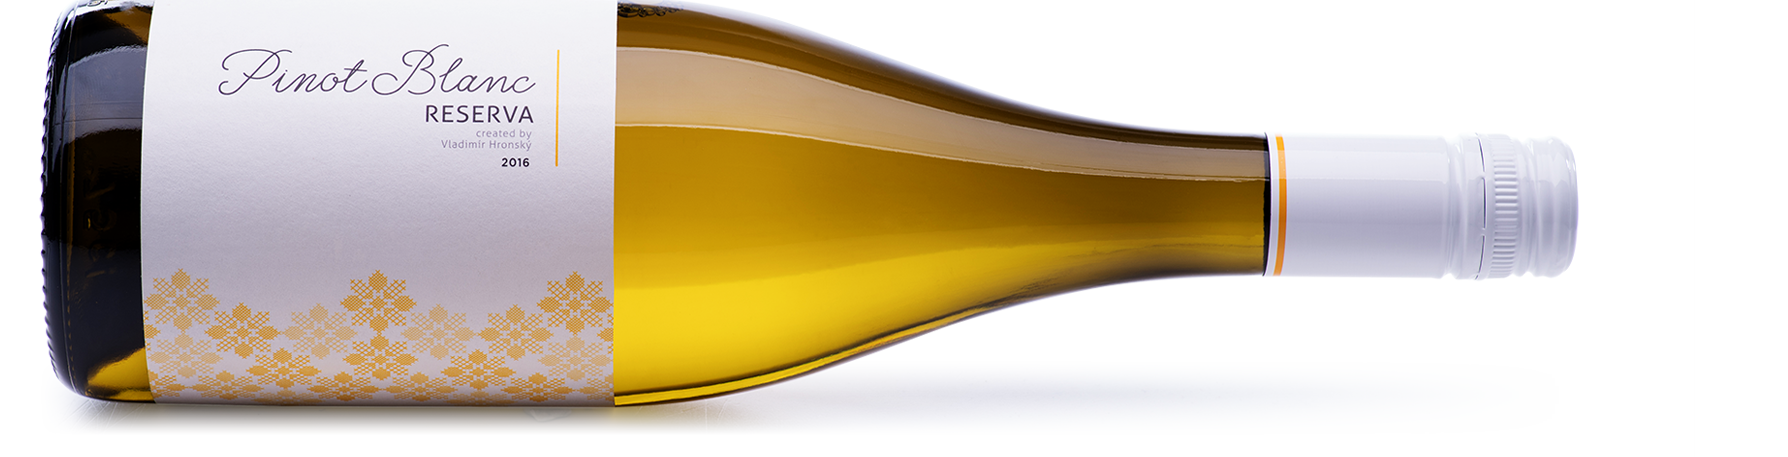 pinot_blanc_reserva_5a8064bbad2be.png